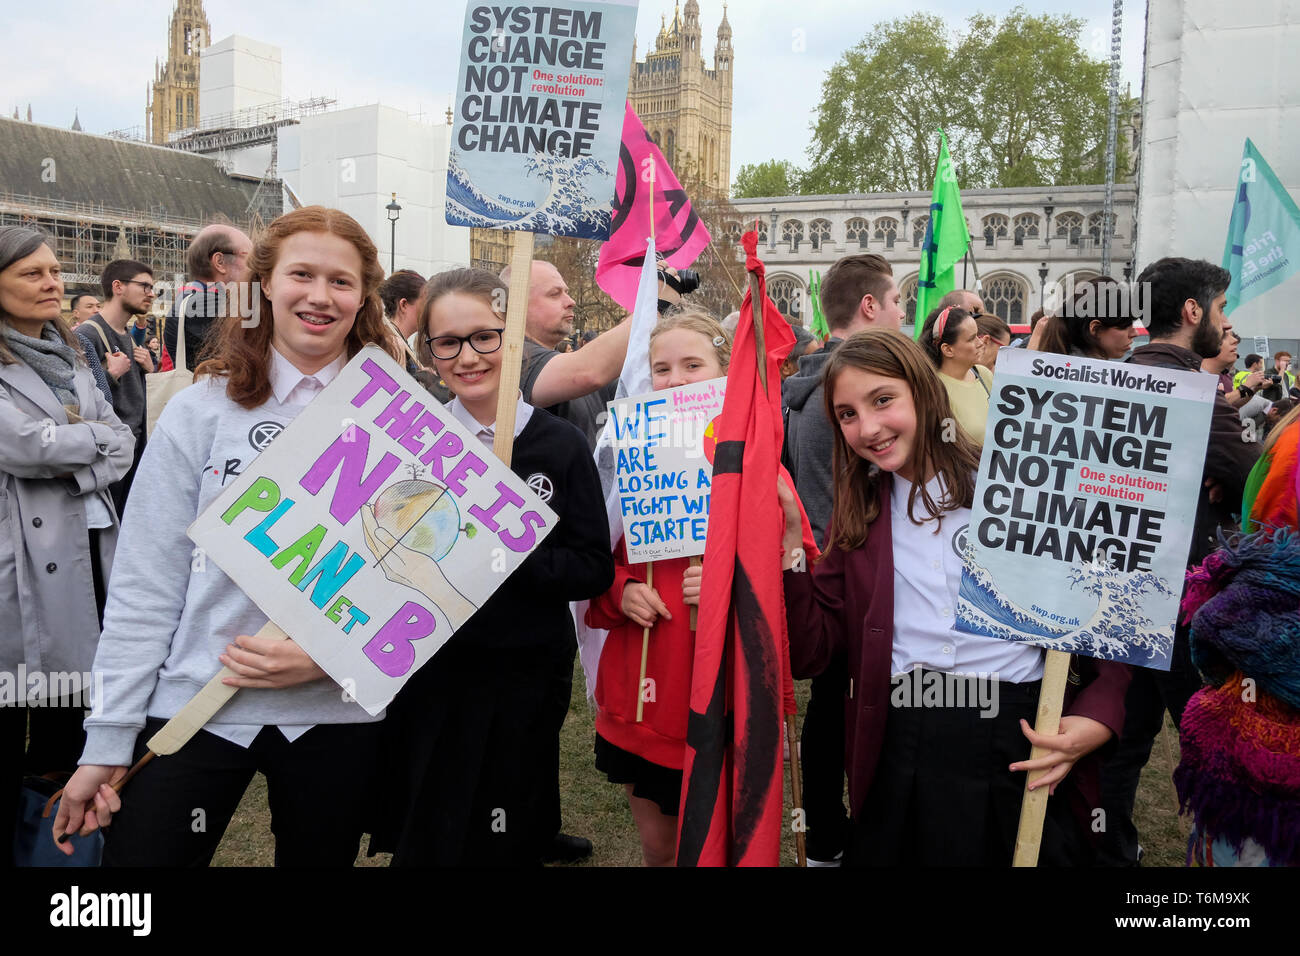 School-age climate protesters attend a Declare A Climate Emergency Now demonstration in Parliament square. Stock Photo